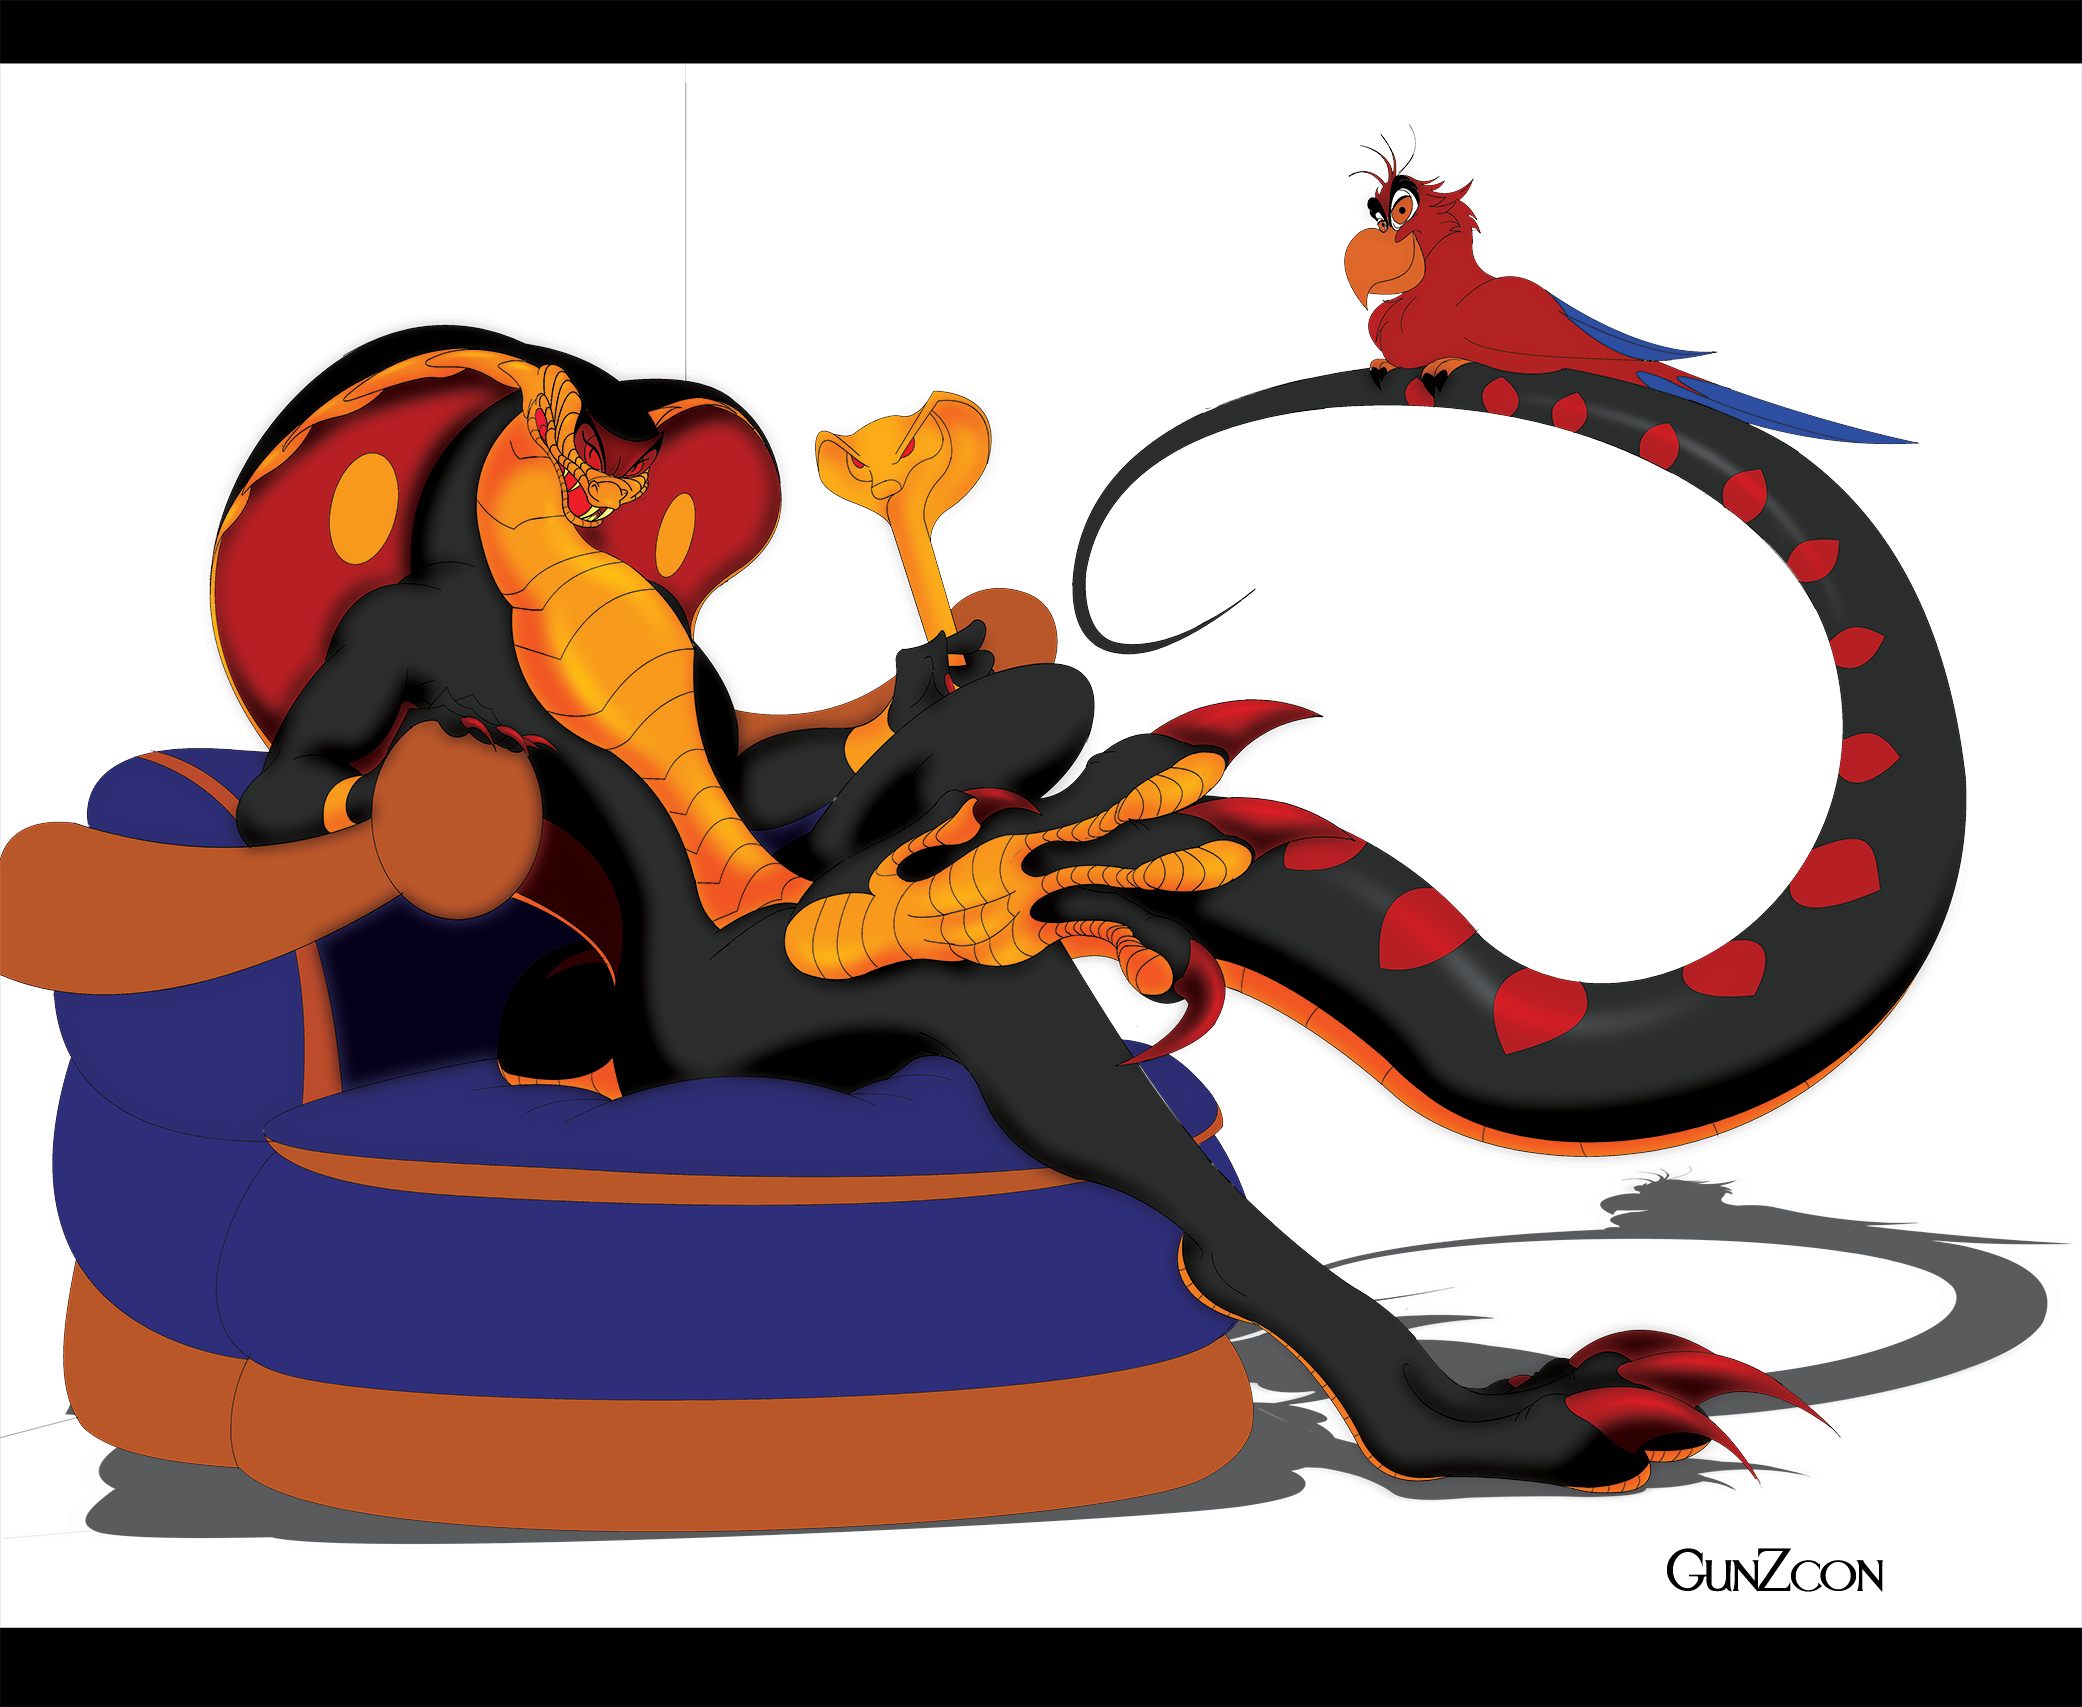 Jafar on the throne color by gunzcon on deviantart - Serpent aladin ...